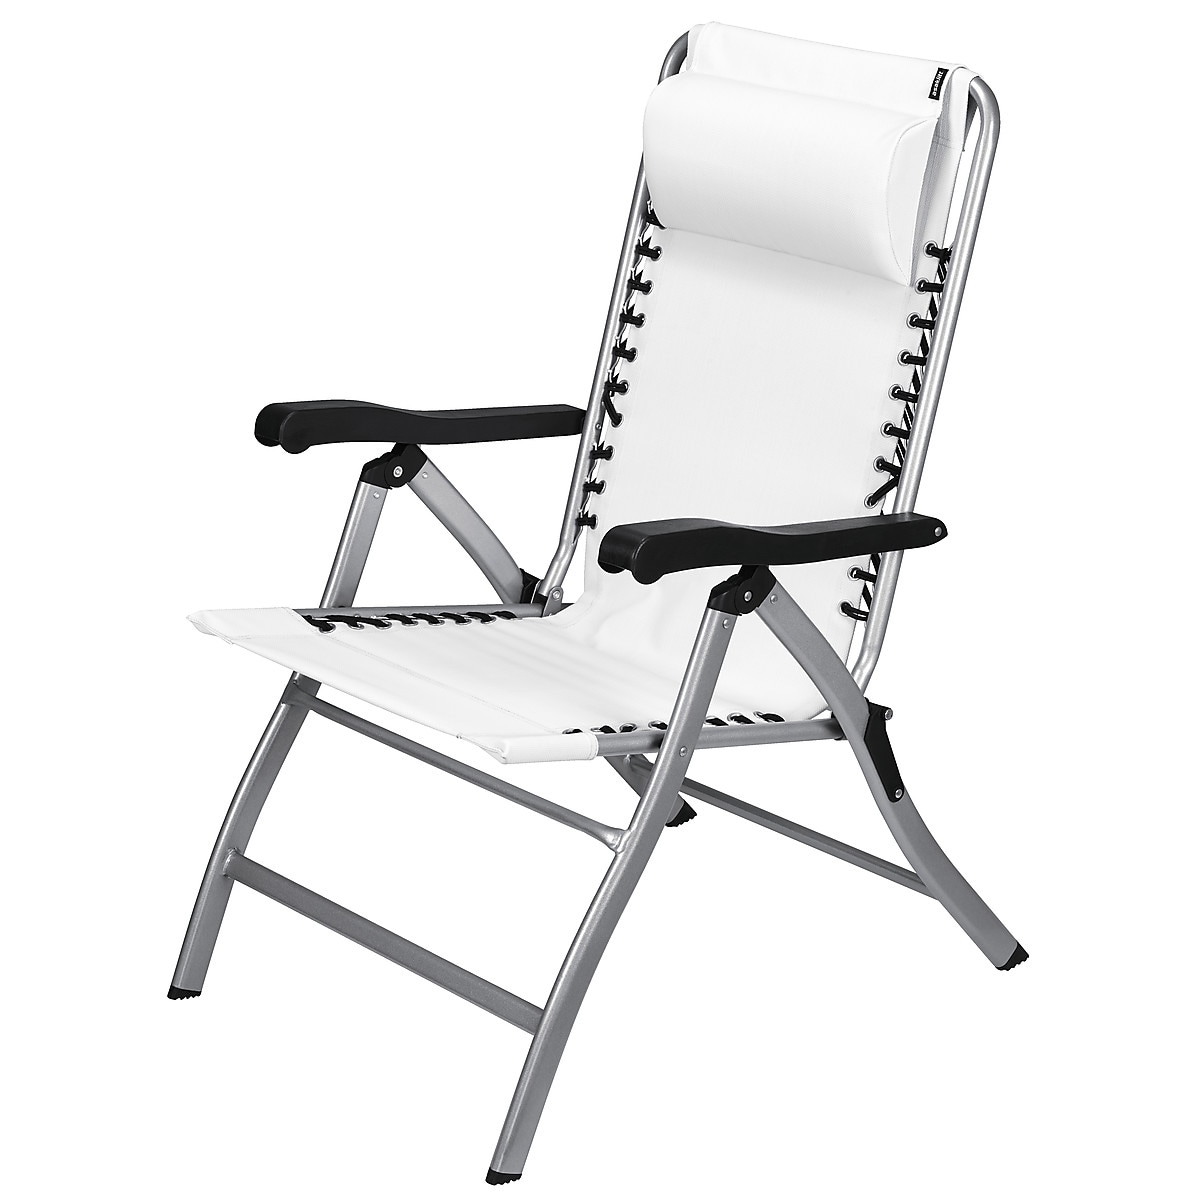 Asaklitt Sun Chair